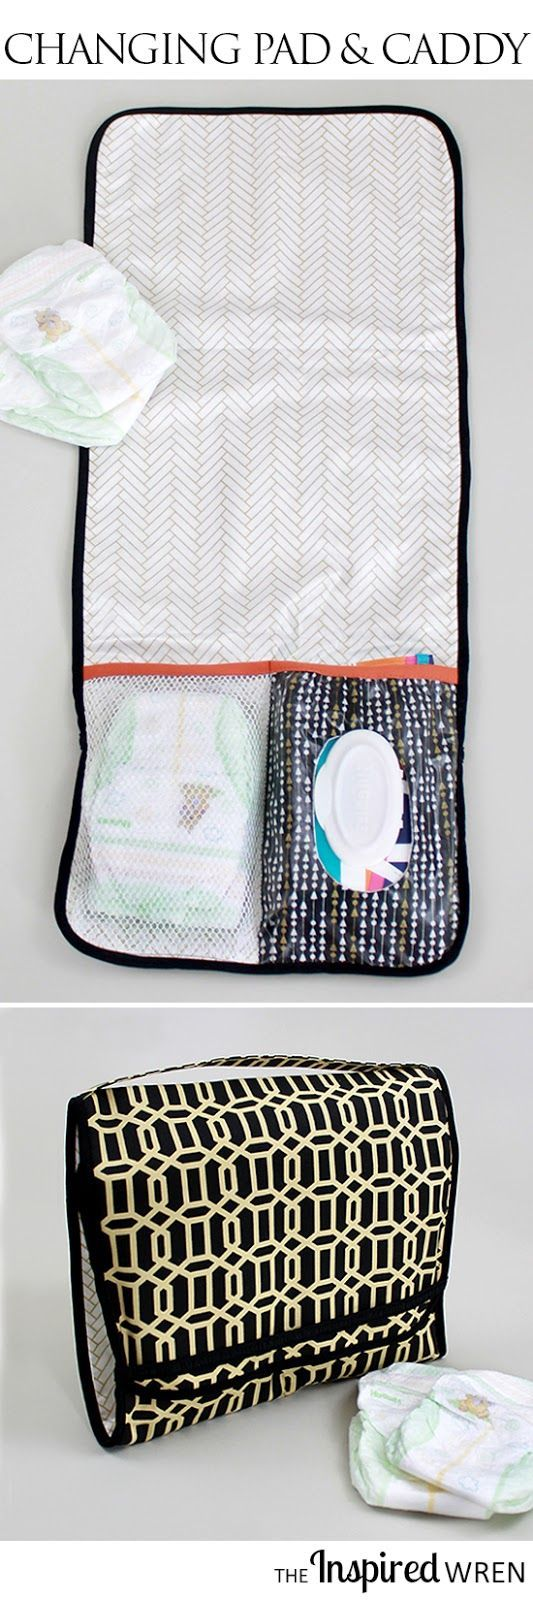 tutorial on the go diaper caddy changing pad best crafts and sewing projects on pinterest. Black Bedroom Furniture Sets. Home Design Ideas